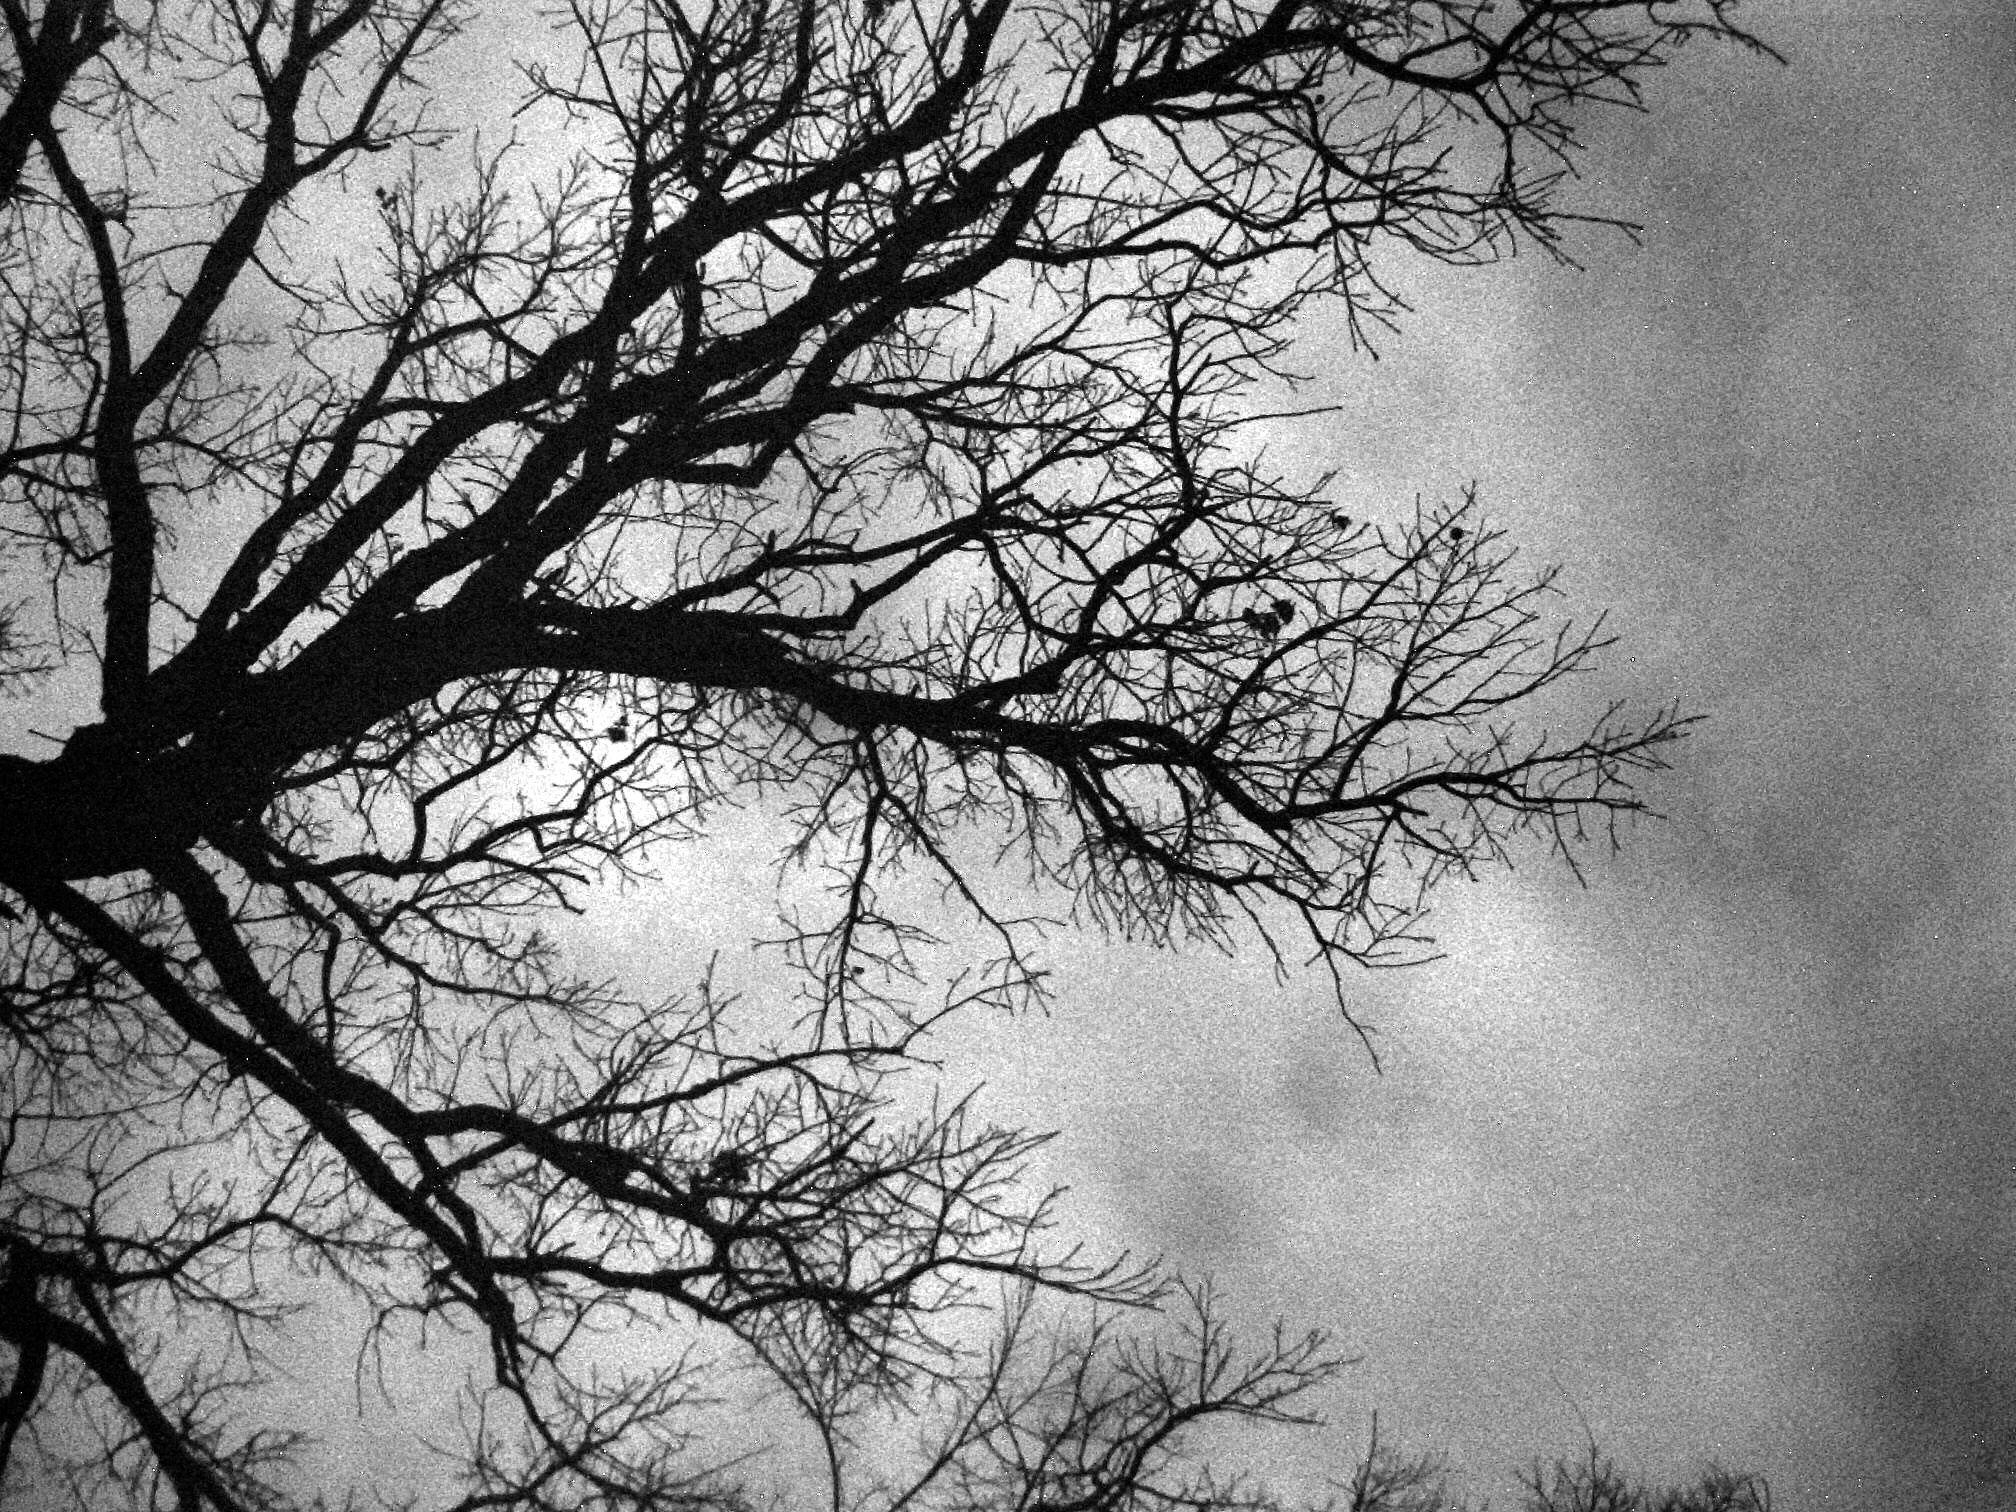 Black And White Images Of Trees 28 Free Hd Wallpaper Black And White Tree Black And White Abstract White Photography